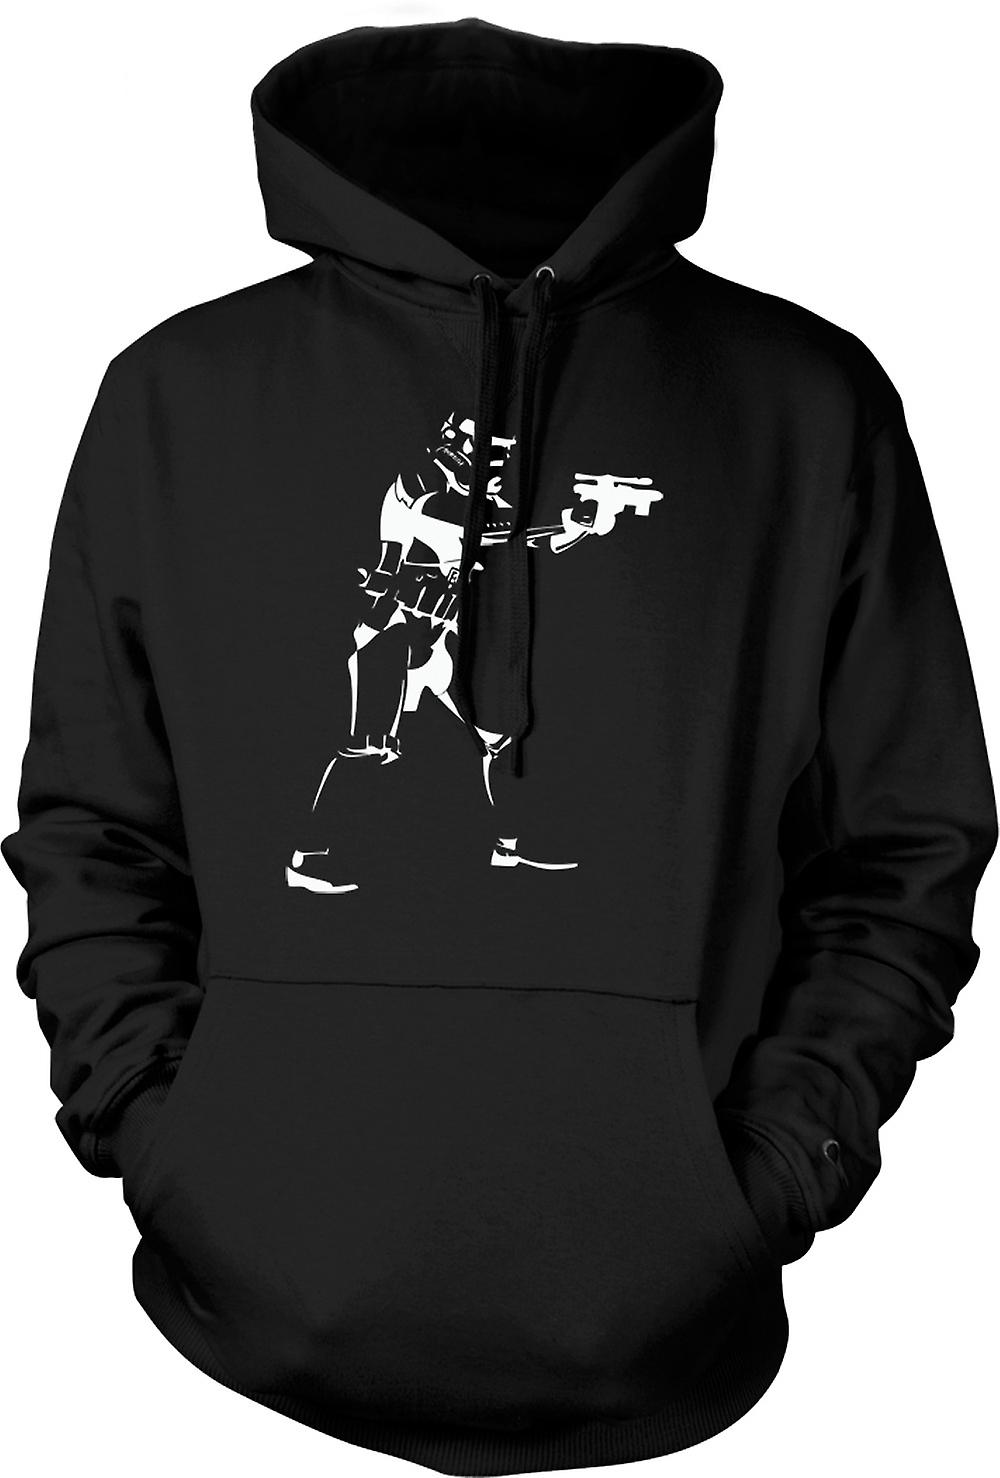 Kinder Hoodie - Star Wars - Storm Trooper - Pop-art